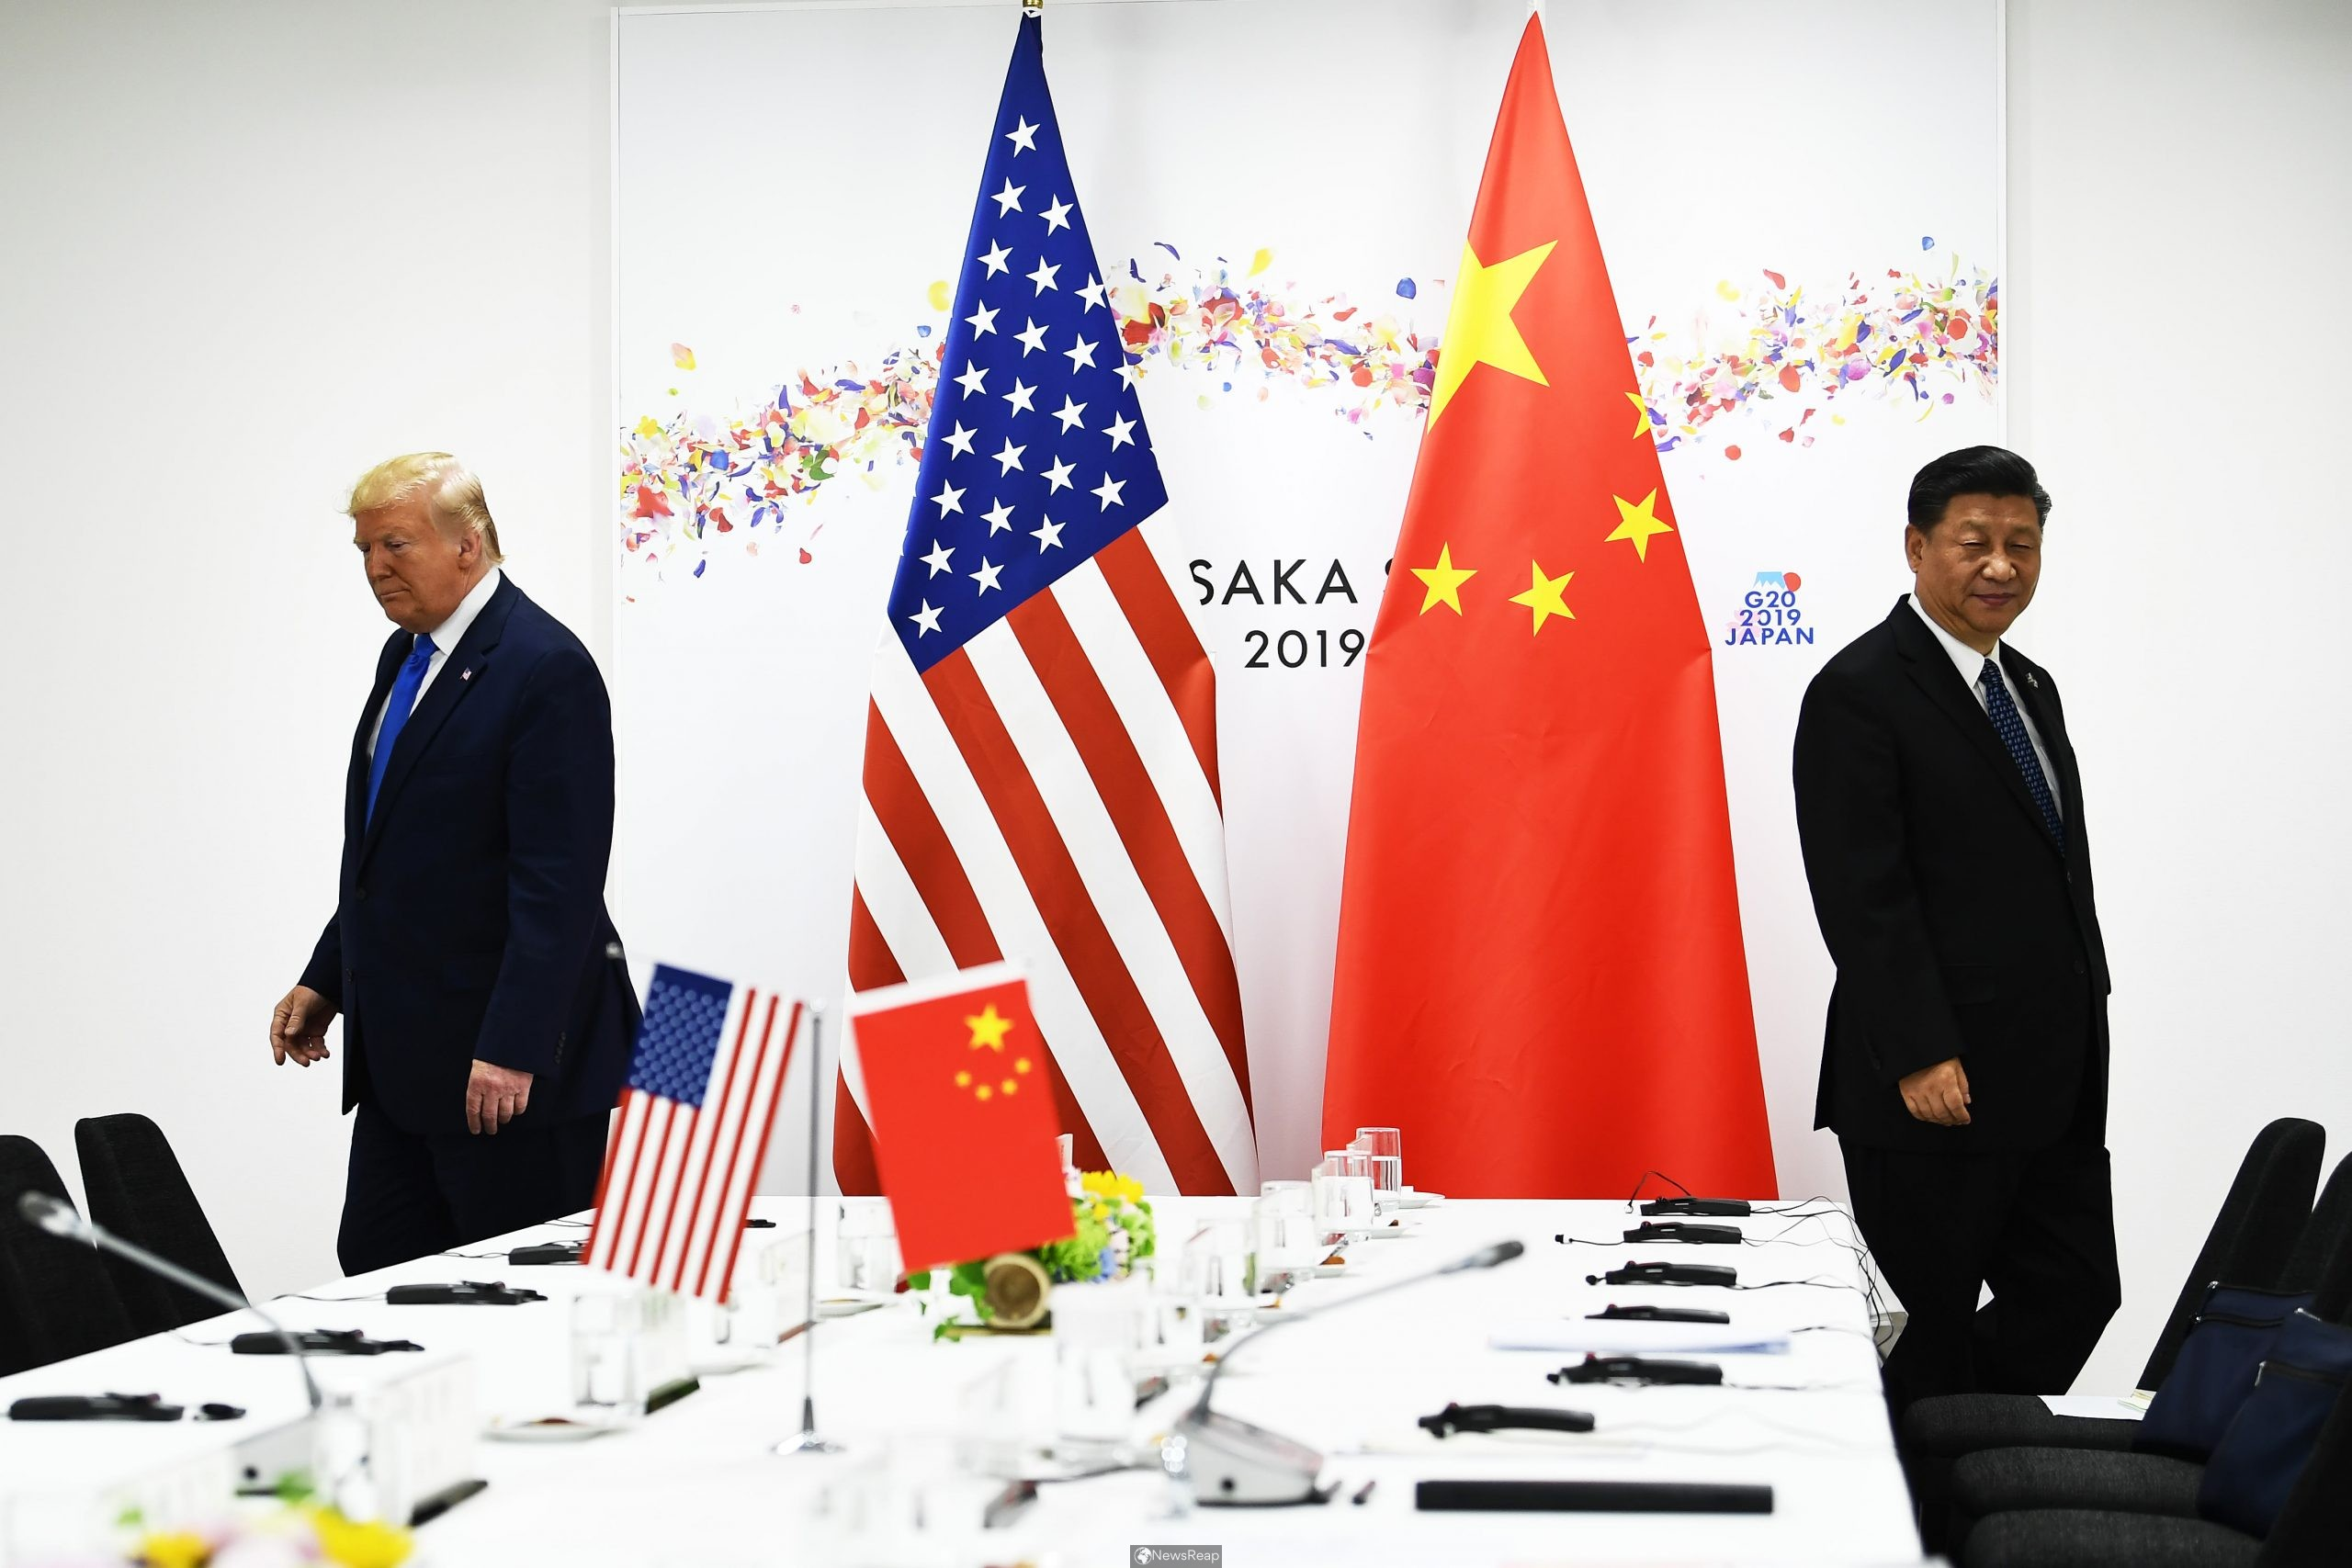 US-CHINA TRADE AGREEMENT TO CEASE ECONOMIC DISPUTE AND TO BUILD INVESTORS TRUST